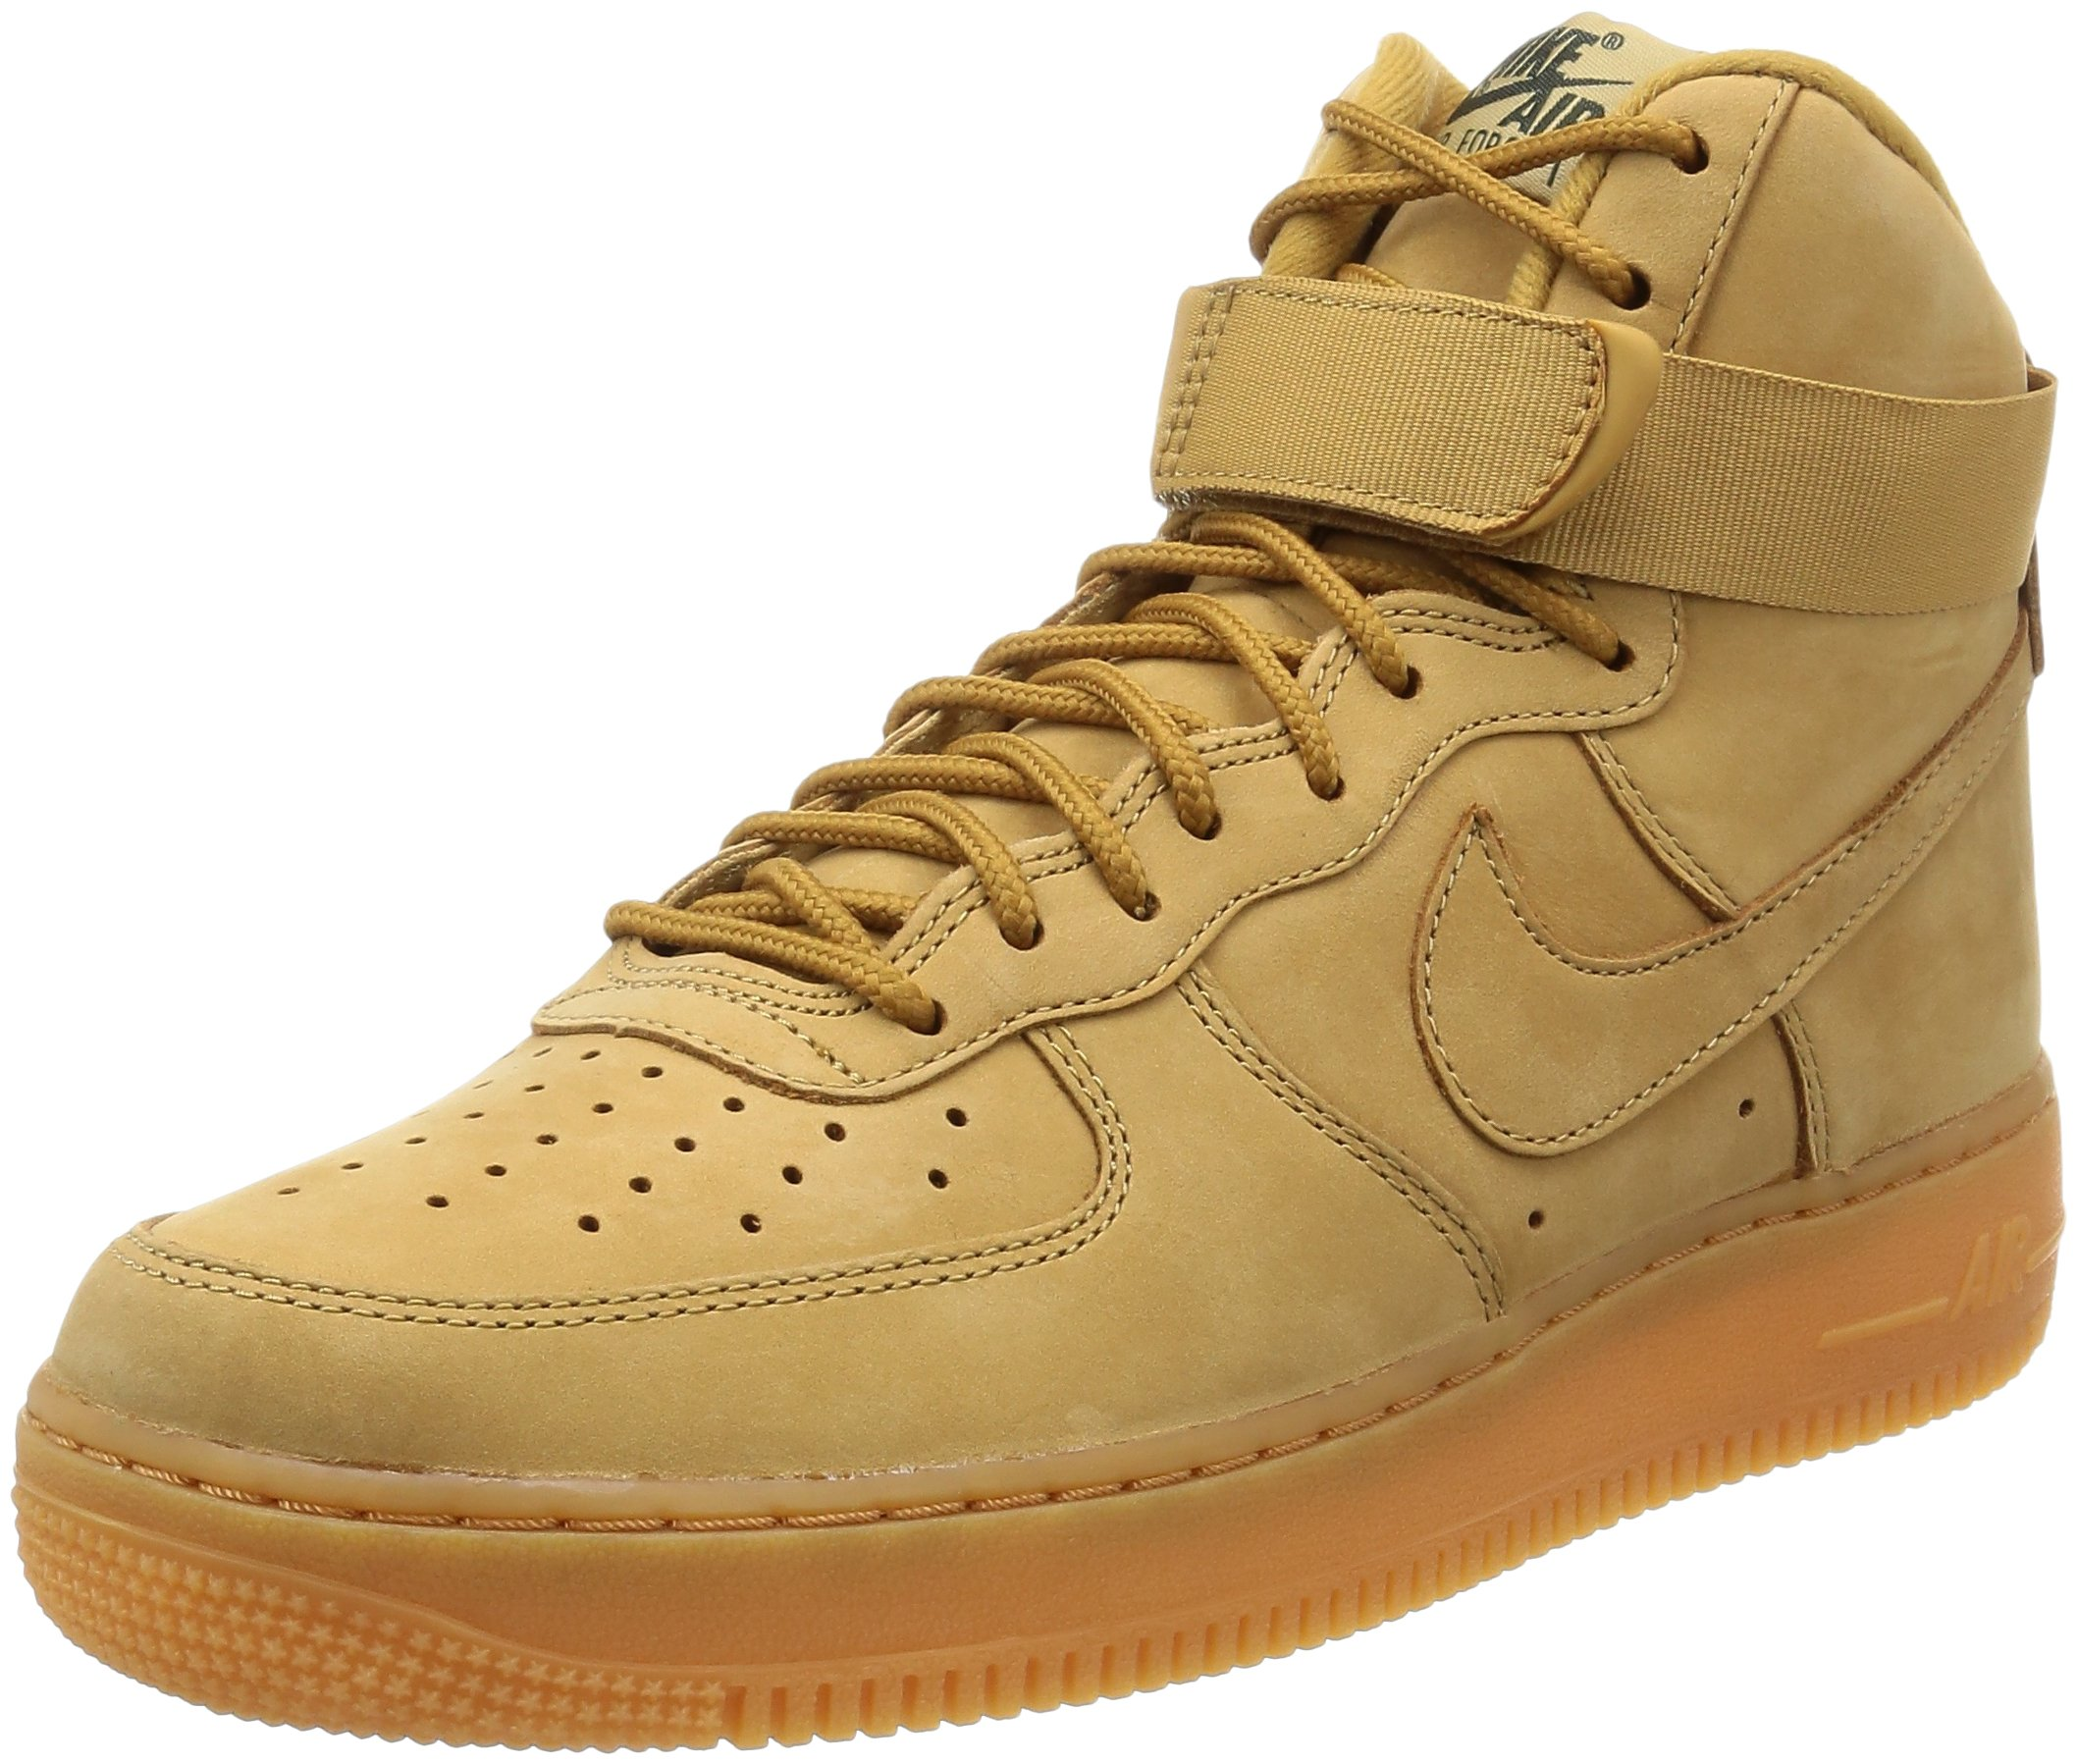 low priced b9606 0d6a7 Galleon - Nike Air Force 1 High 07 LV8 WB - 882096 200